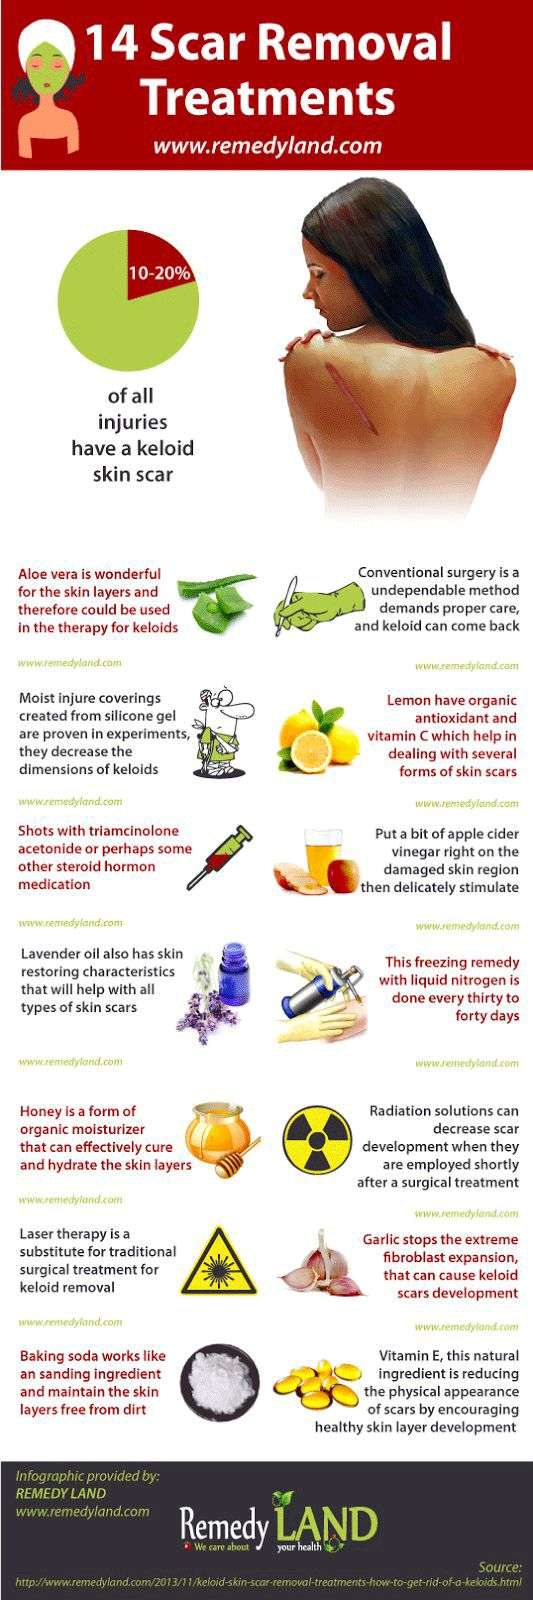 14 keloid skin scar removal treatments or how to get rid of a keloids - Remedy Land #keloid #skincare #remedies